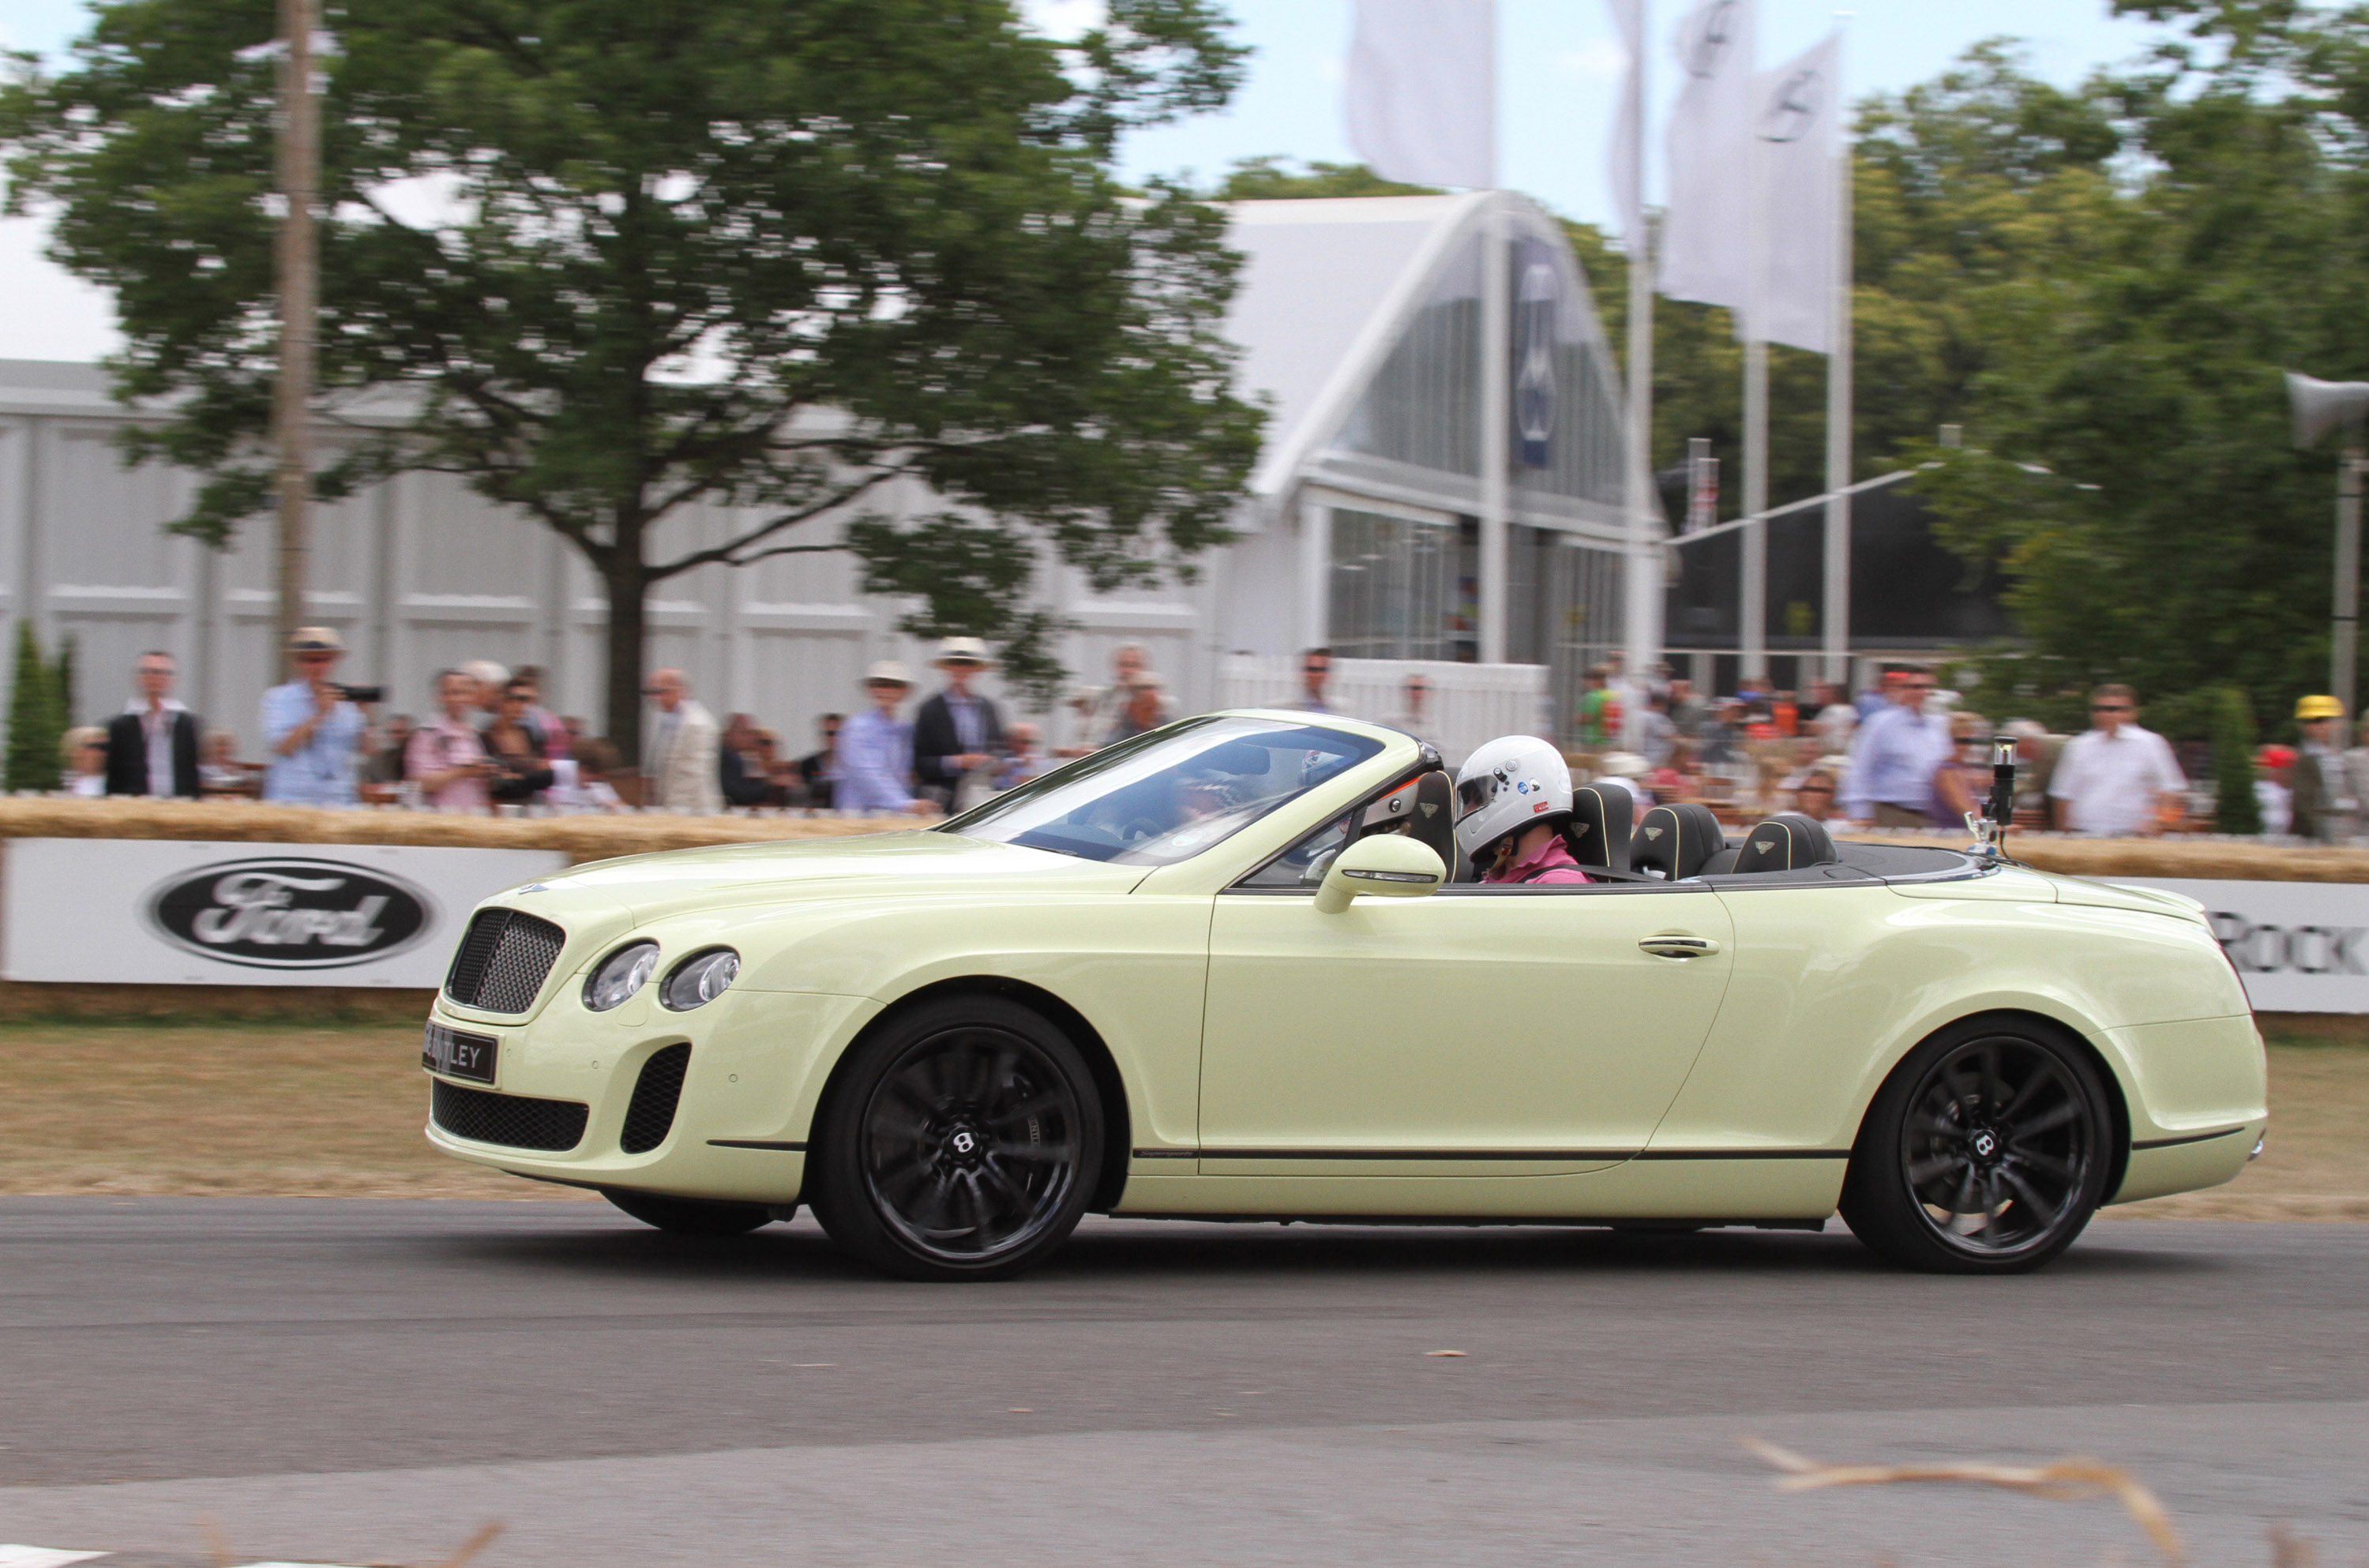 convertible evo bentley show vert news pictures auto mulsanne grand prices la and cars